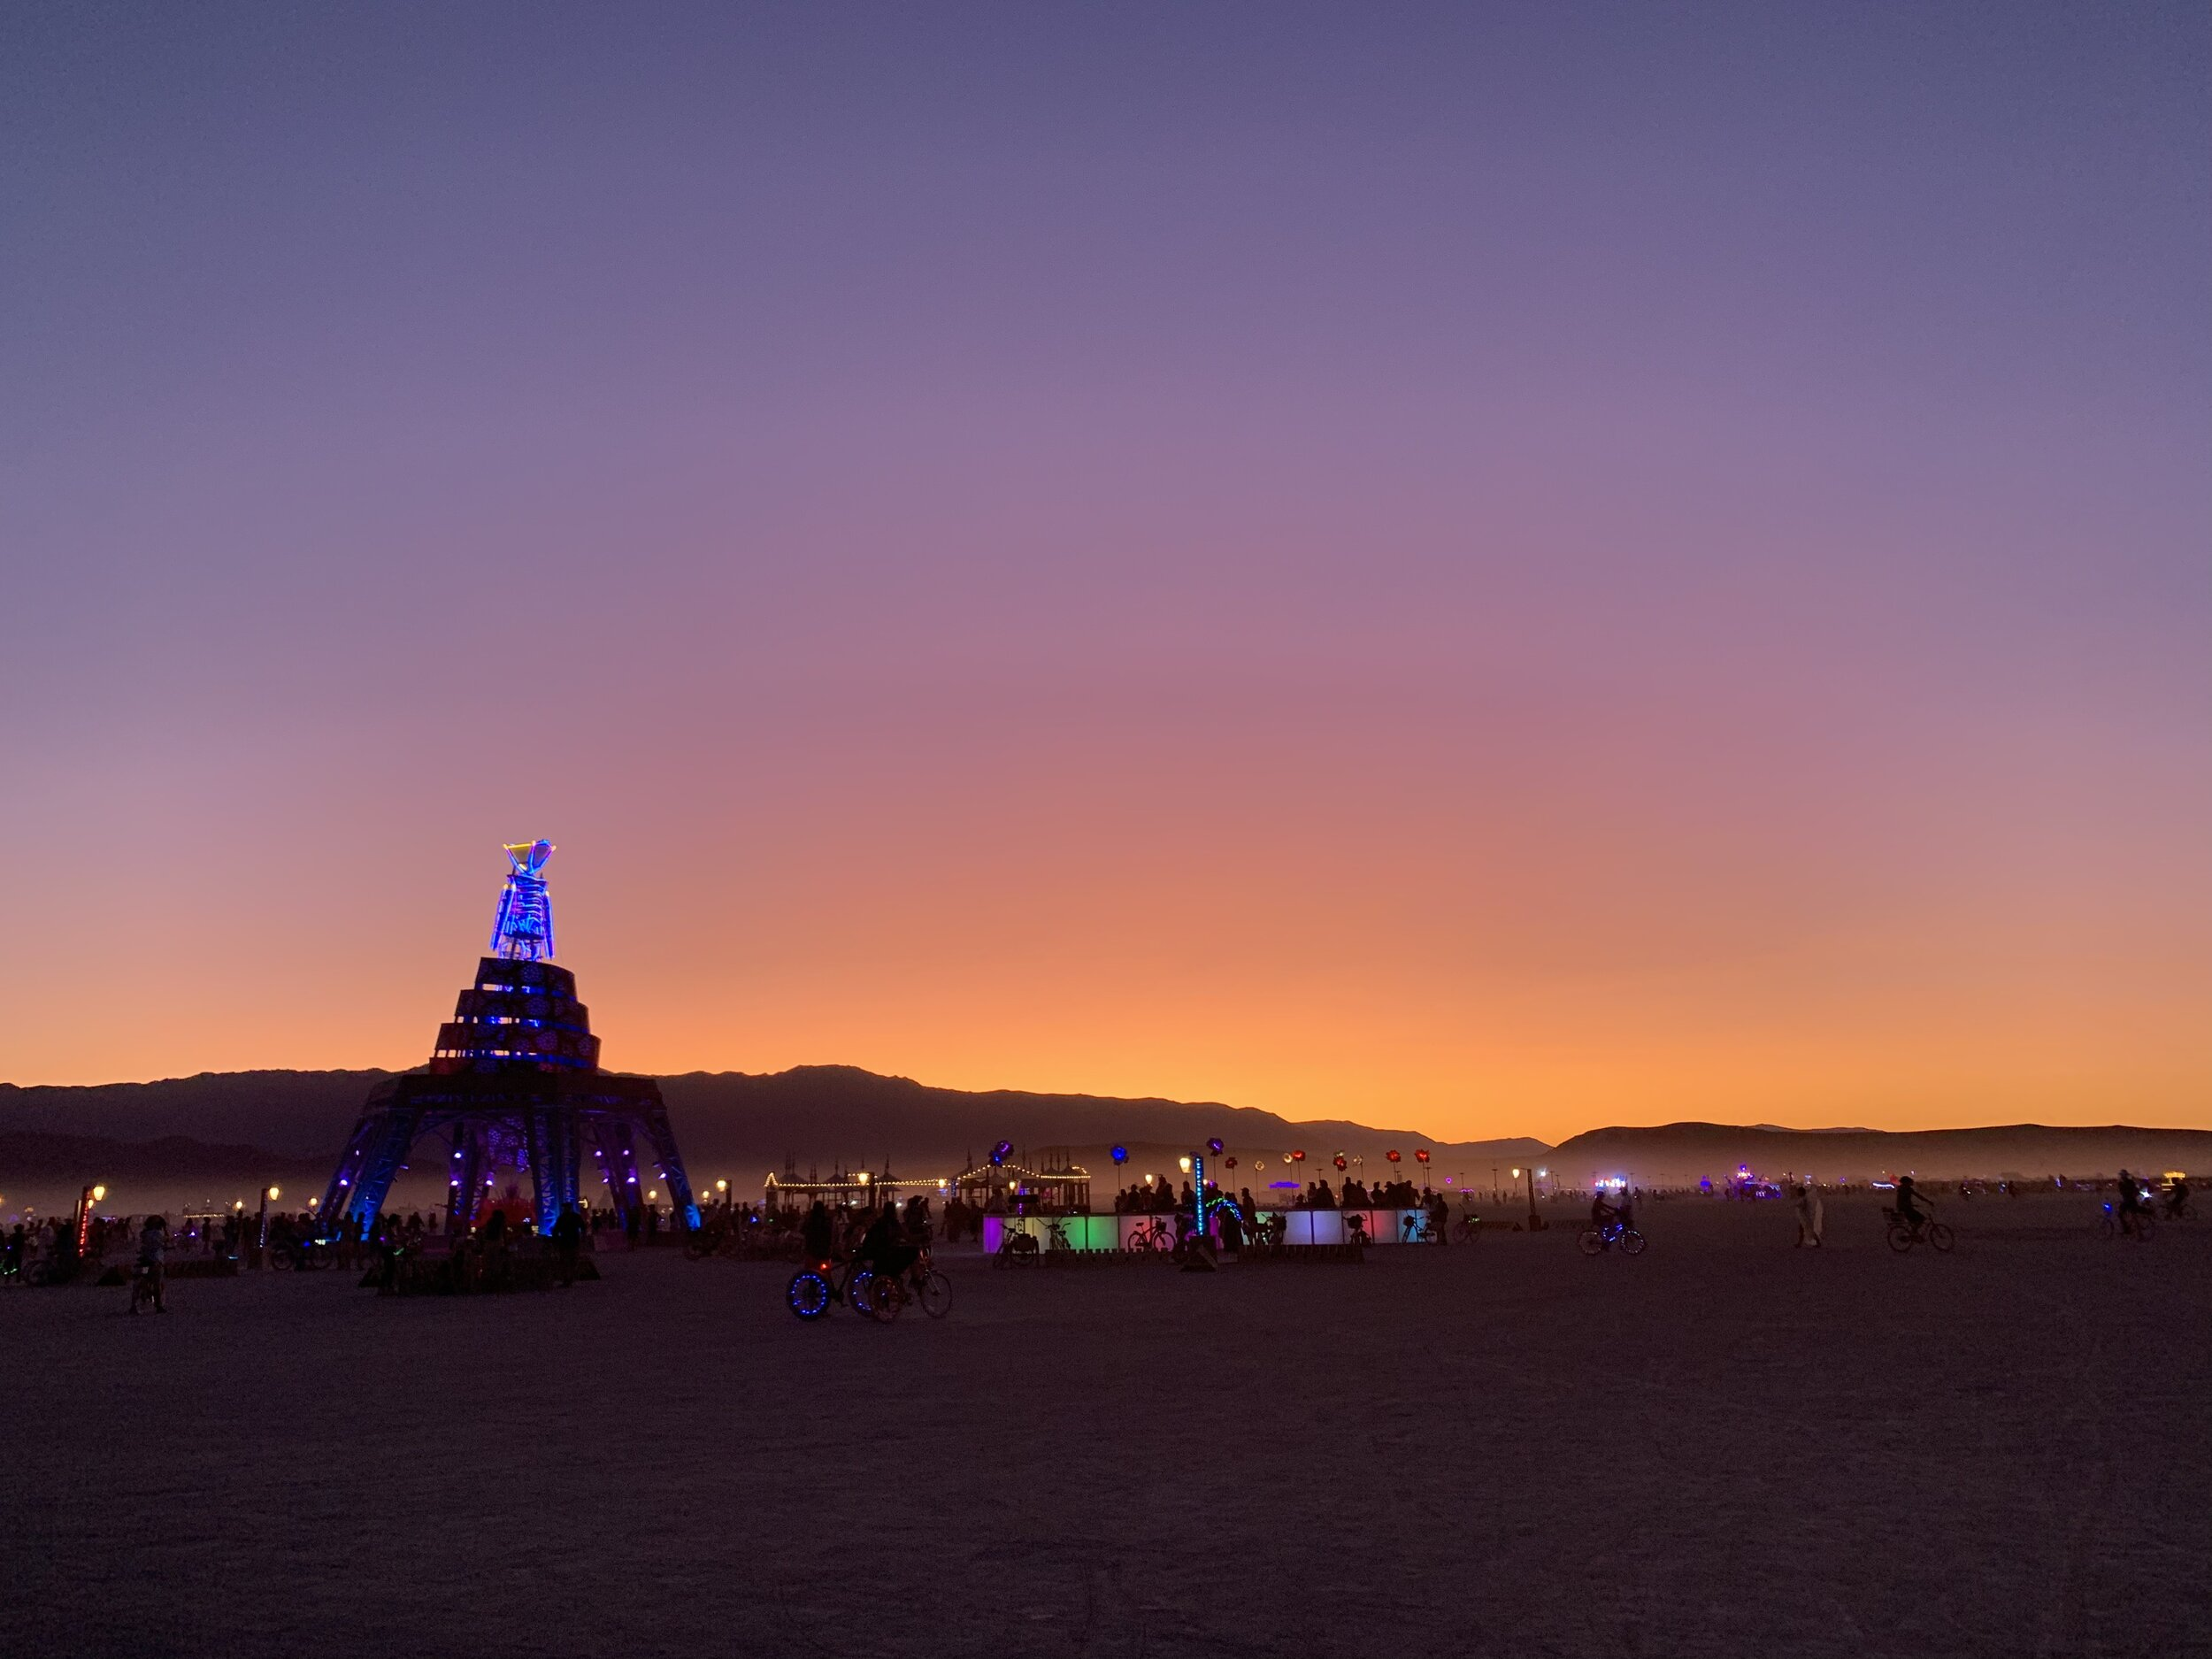 The sunrises and sunsets at Burning Man are not to be missed!